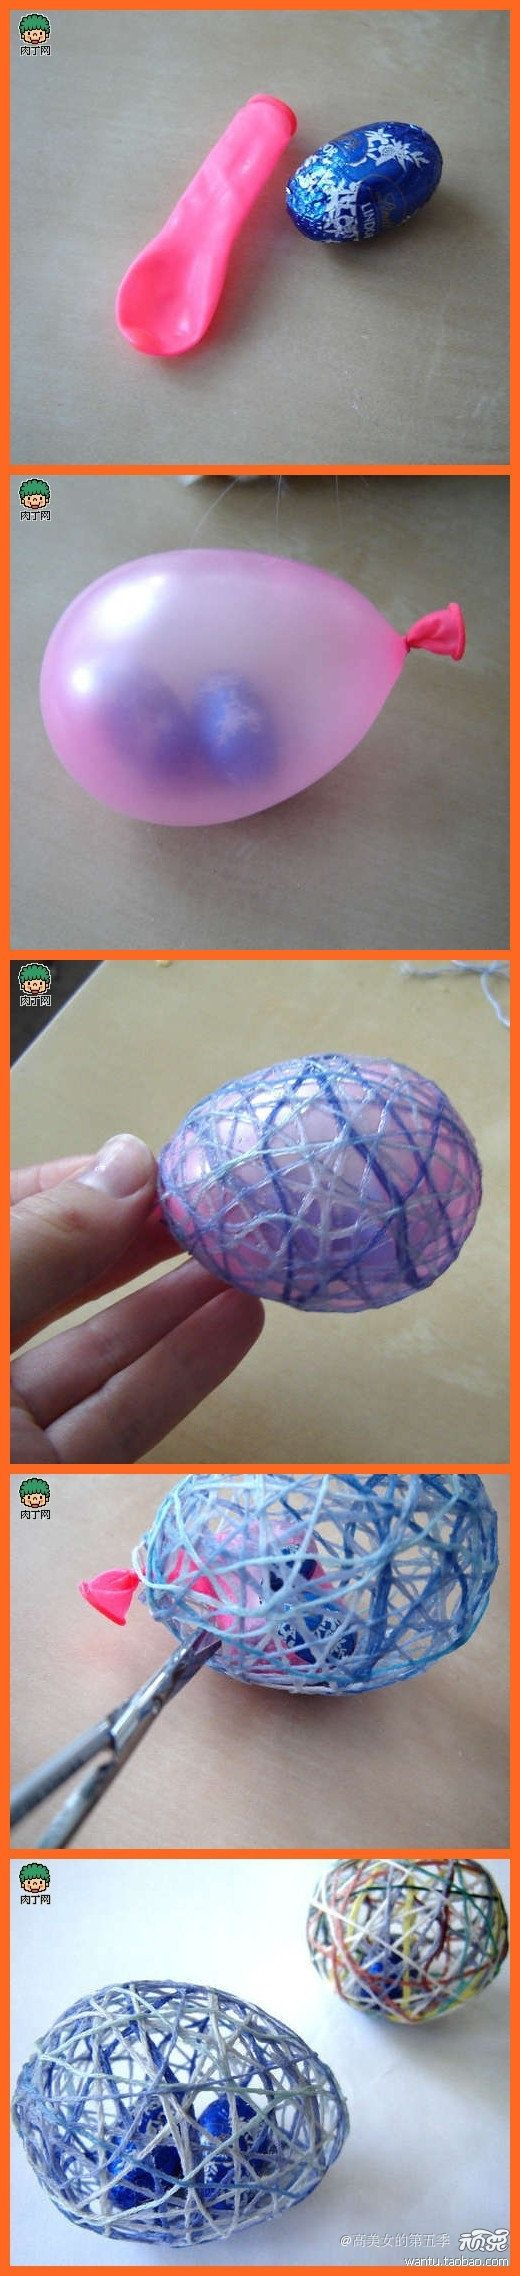 Get candy into Easter eggs. by jimmie